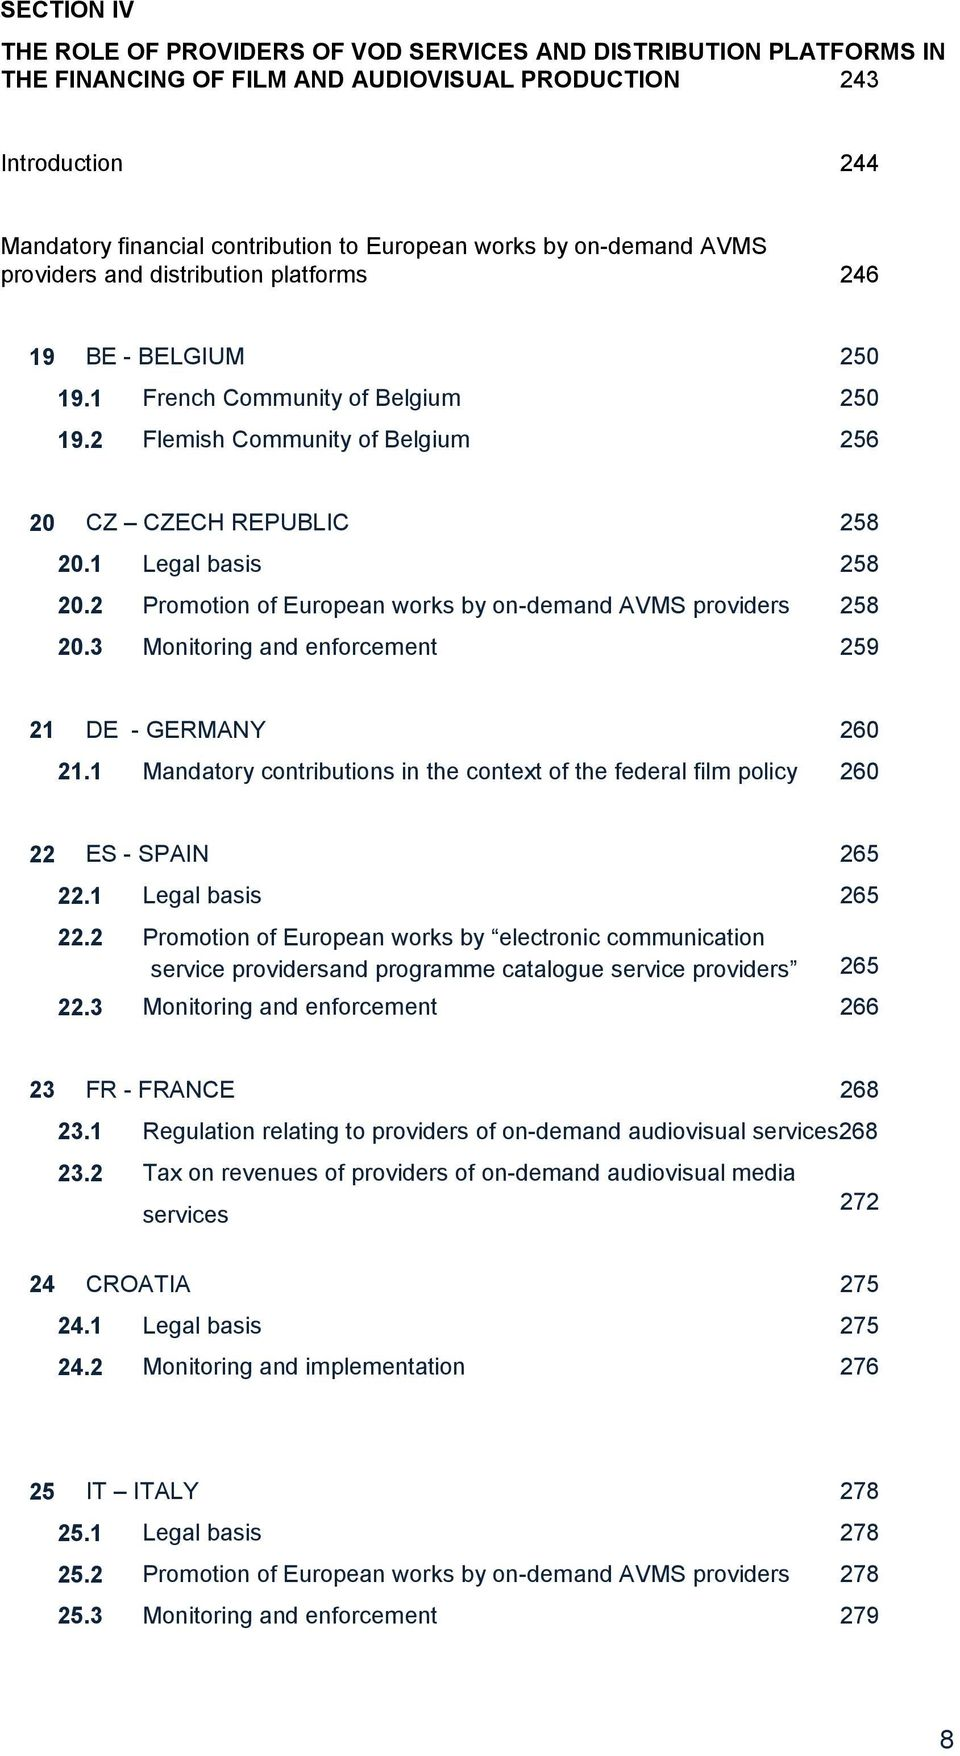 1 Legal basis 258 20.2 Promotion of European works by on-demand AVMS providers 258 20.3 Monitoring and enforcement 259 21 DE - GERMANY 260 21.